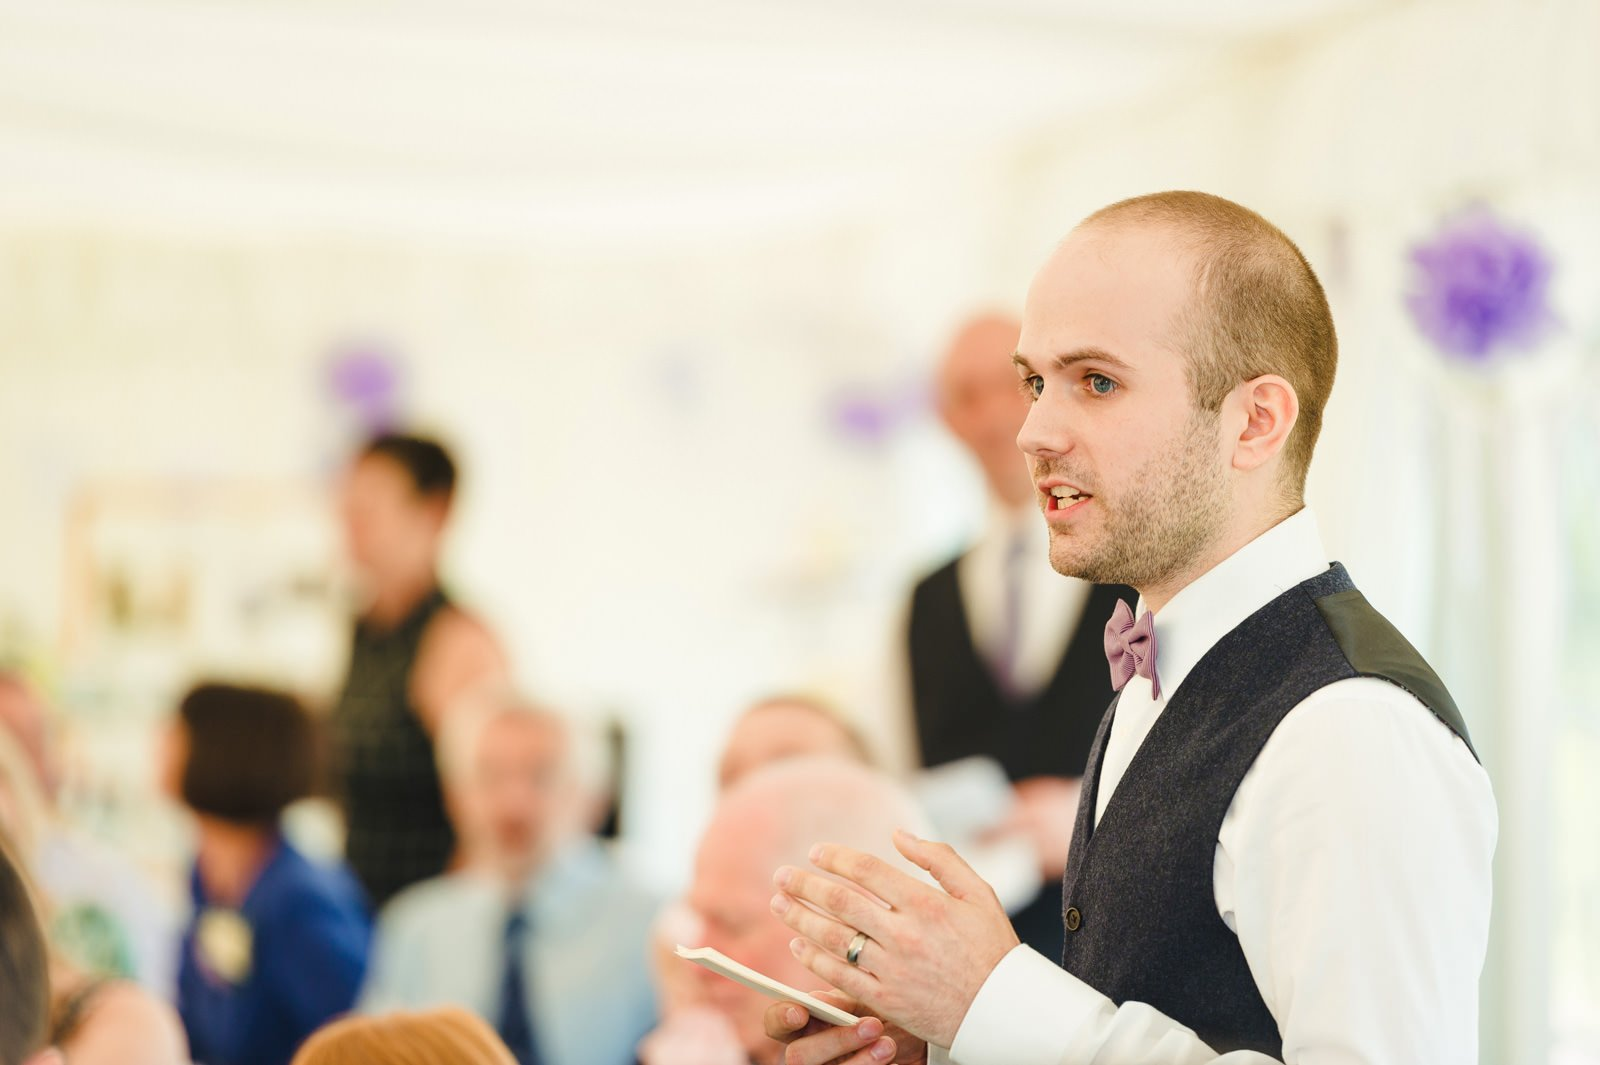 millers of netley wedding 84 - Millers Of Netley wedding, Dorrington, Shrewsbury | Emma + Ben